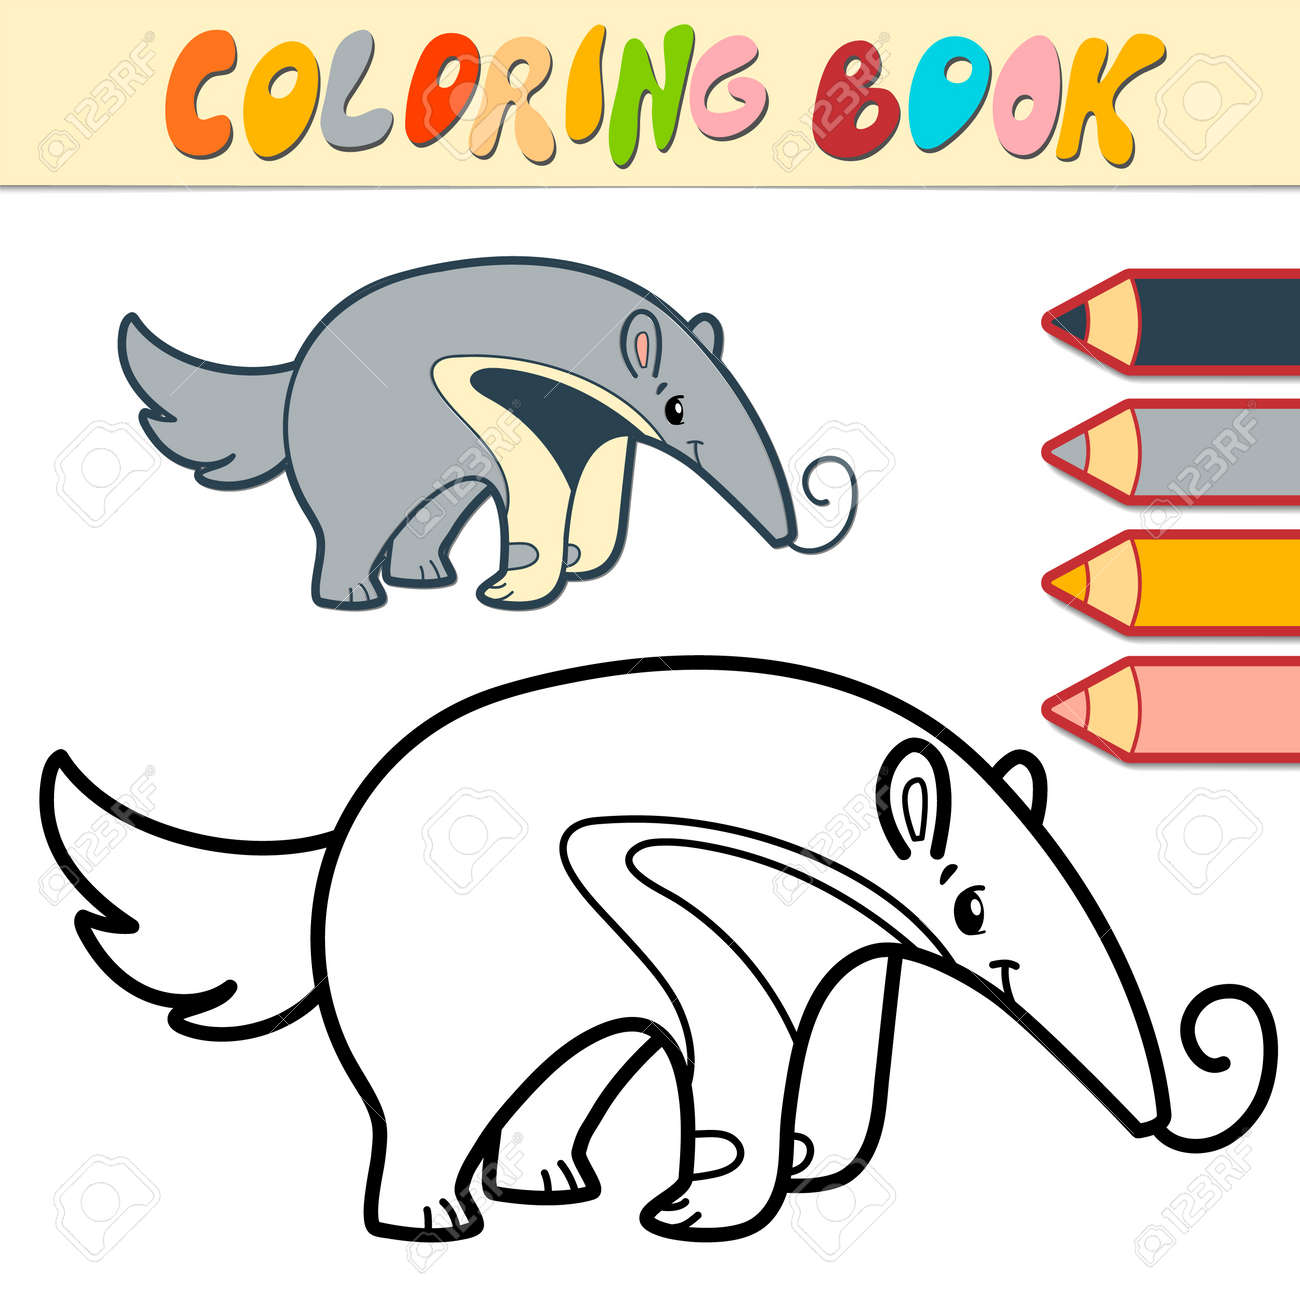 Coloring book or page for kids. ant-eater black and white vector illustration - 168781286